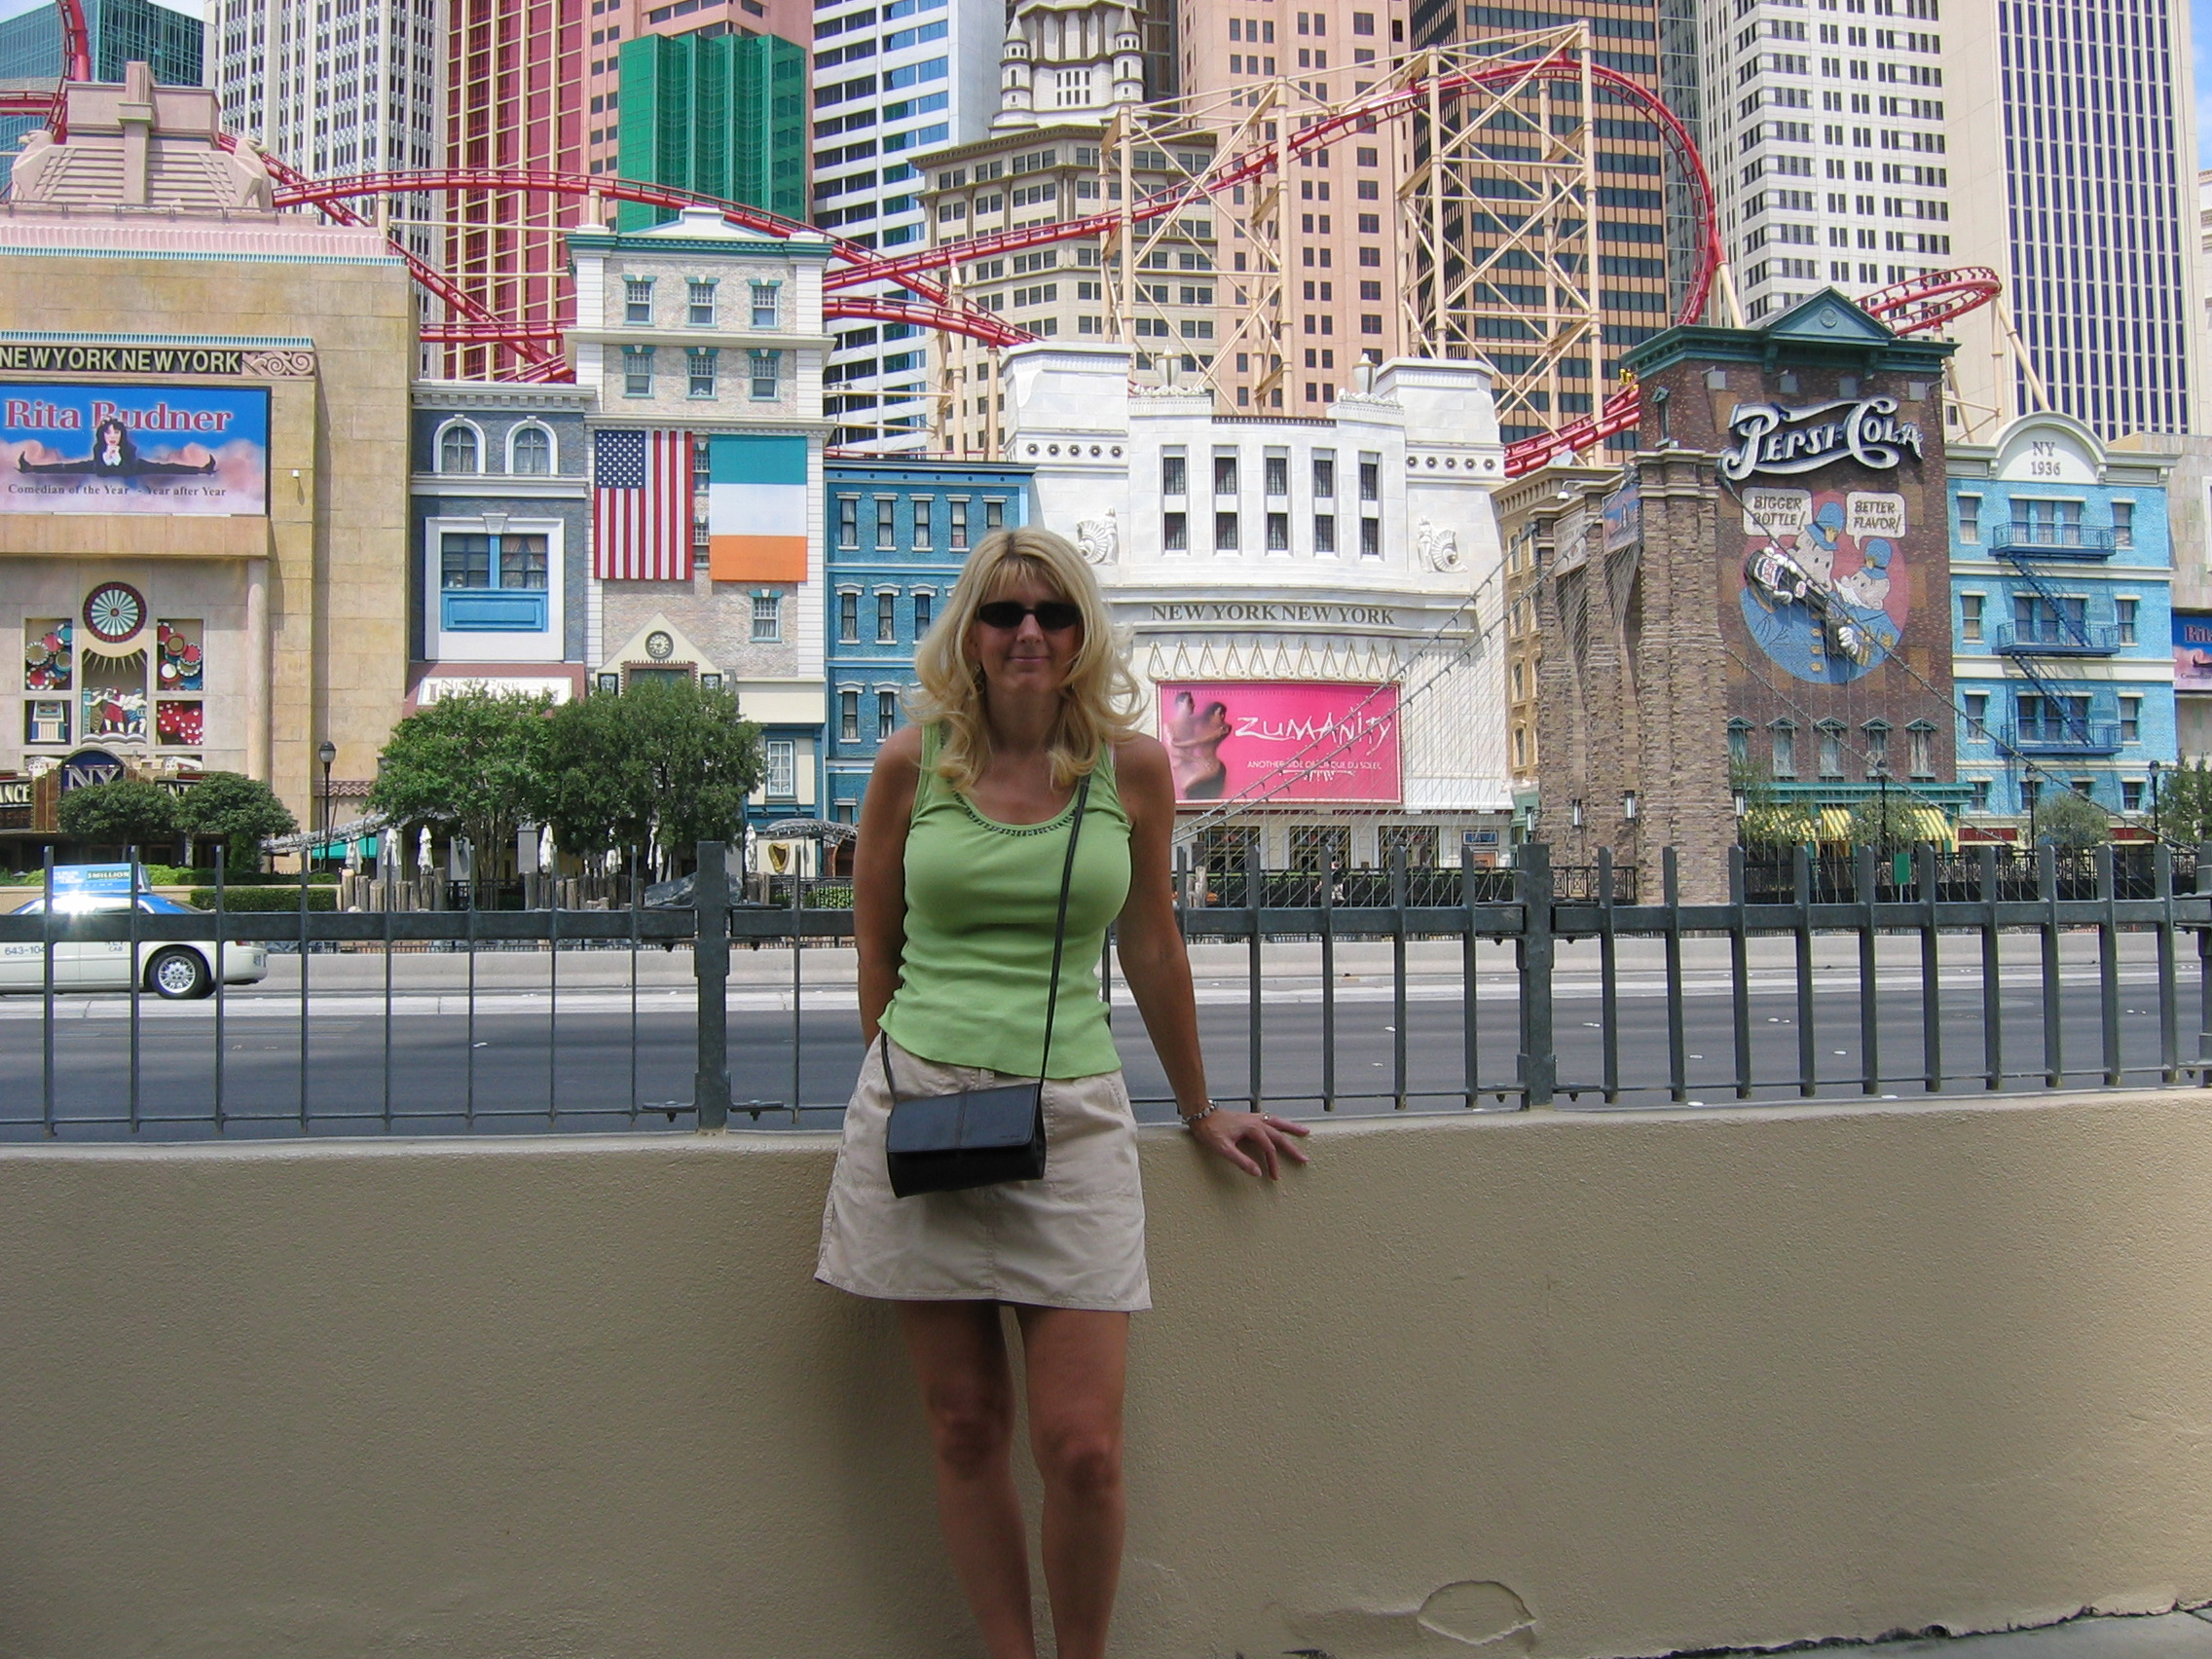 Here's Toni in front of the New York New York Hotel on the Las Vegas Strip.